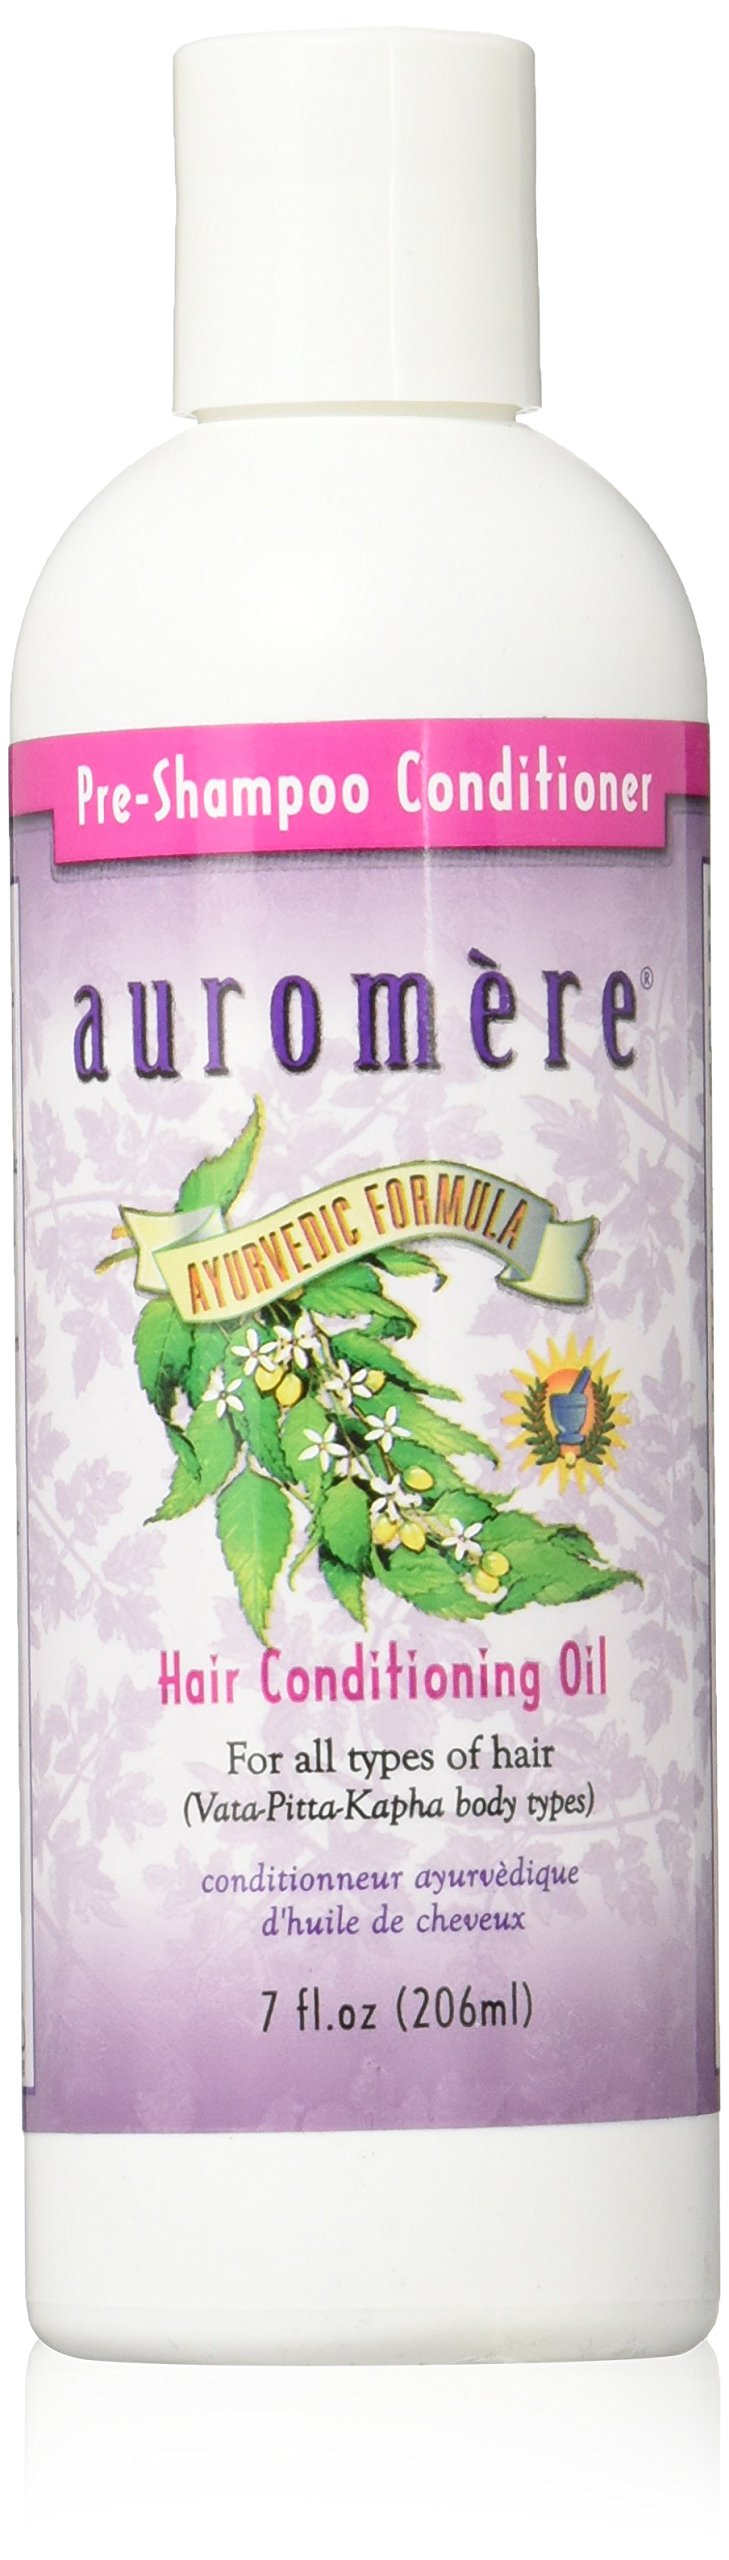 Auromere Ayurvedic Pre-Shampoo Conditioner Conditioning Oil, 7 Ounce